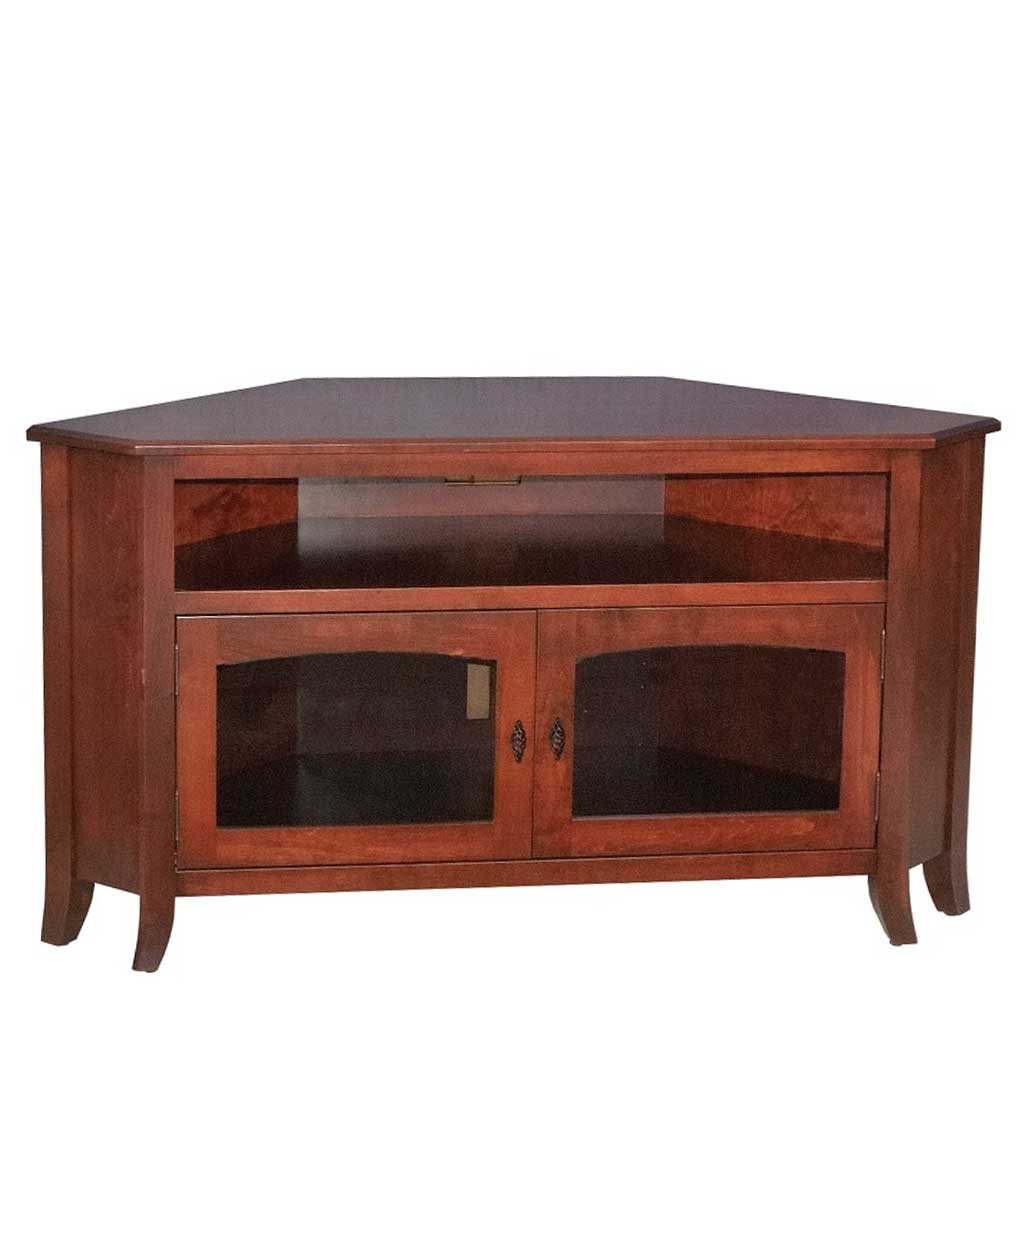 Young mission style 40 corner tv stand amish direct for Mission style entertainment center plans